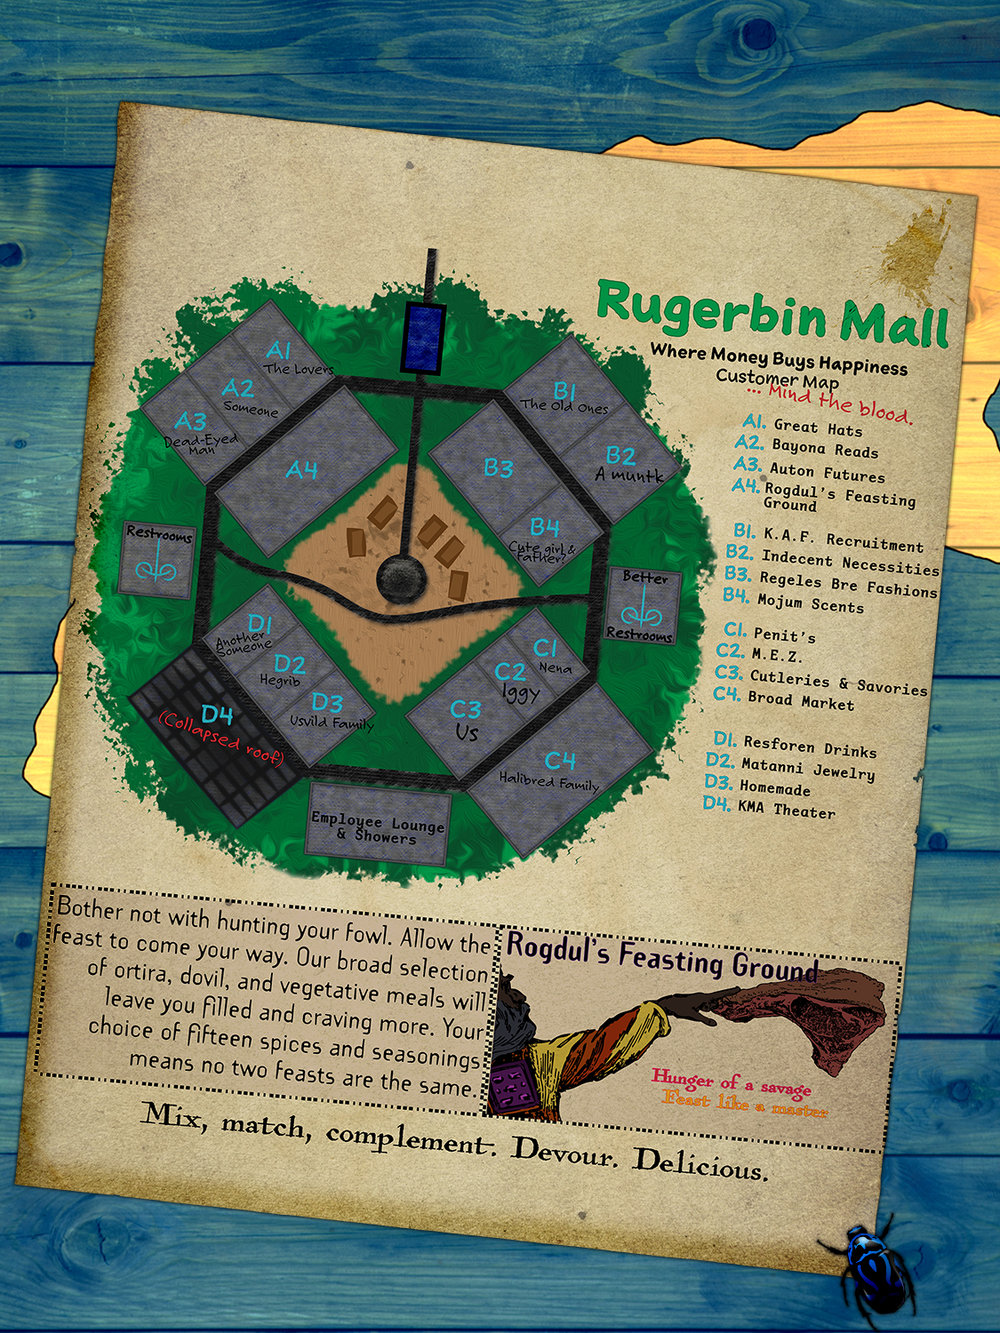 Rugerbin Mall Customer Map    Where Money Buys Happiness ... Mind the blood.   A1 Great Hats  A2 Bayona Reads  A3 Auton Futures  A4 Rogdul's Feasting Ground    B1 K.A.F. Recruitment  B2 Indecent Necessities  B3 Regeles Bre Fashion  B4 Mojum Scents    C1 Penit's  C2 M.E.Z.  C3 Cutleries & Savories  C4 Broad Market    D1 Resforen Drinks  D2 Matanni Jewelry  D3 Homemade  D4 KMA Theater     Rogdul's Feasting Ground   Hunger of a savage / Feast like a master  Bother not with hunting your fowl. Allow the feast to come your way. Our broad selection of ortira, dovil, and vegetative meals will leave you filled and craving more. Your choice of fifteen spices and seasonings means no two feasts are the same.   Mix, match, complement. Devour. Delicious.